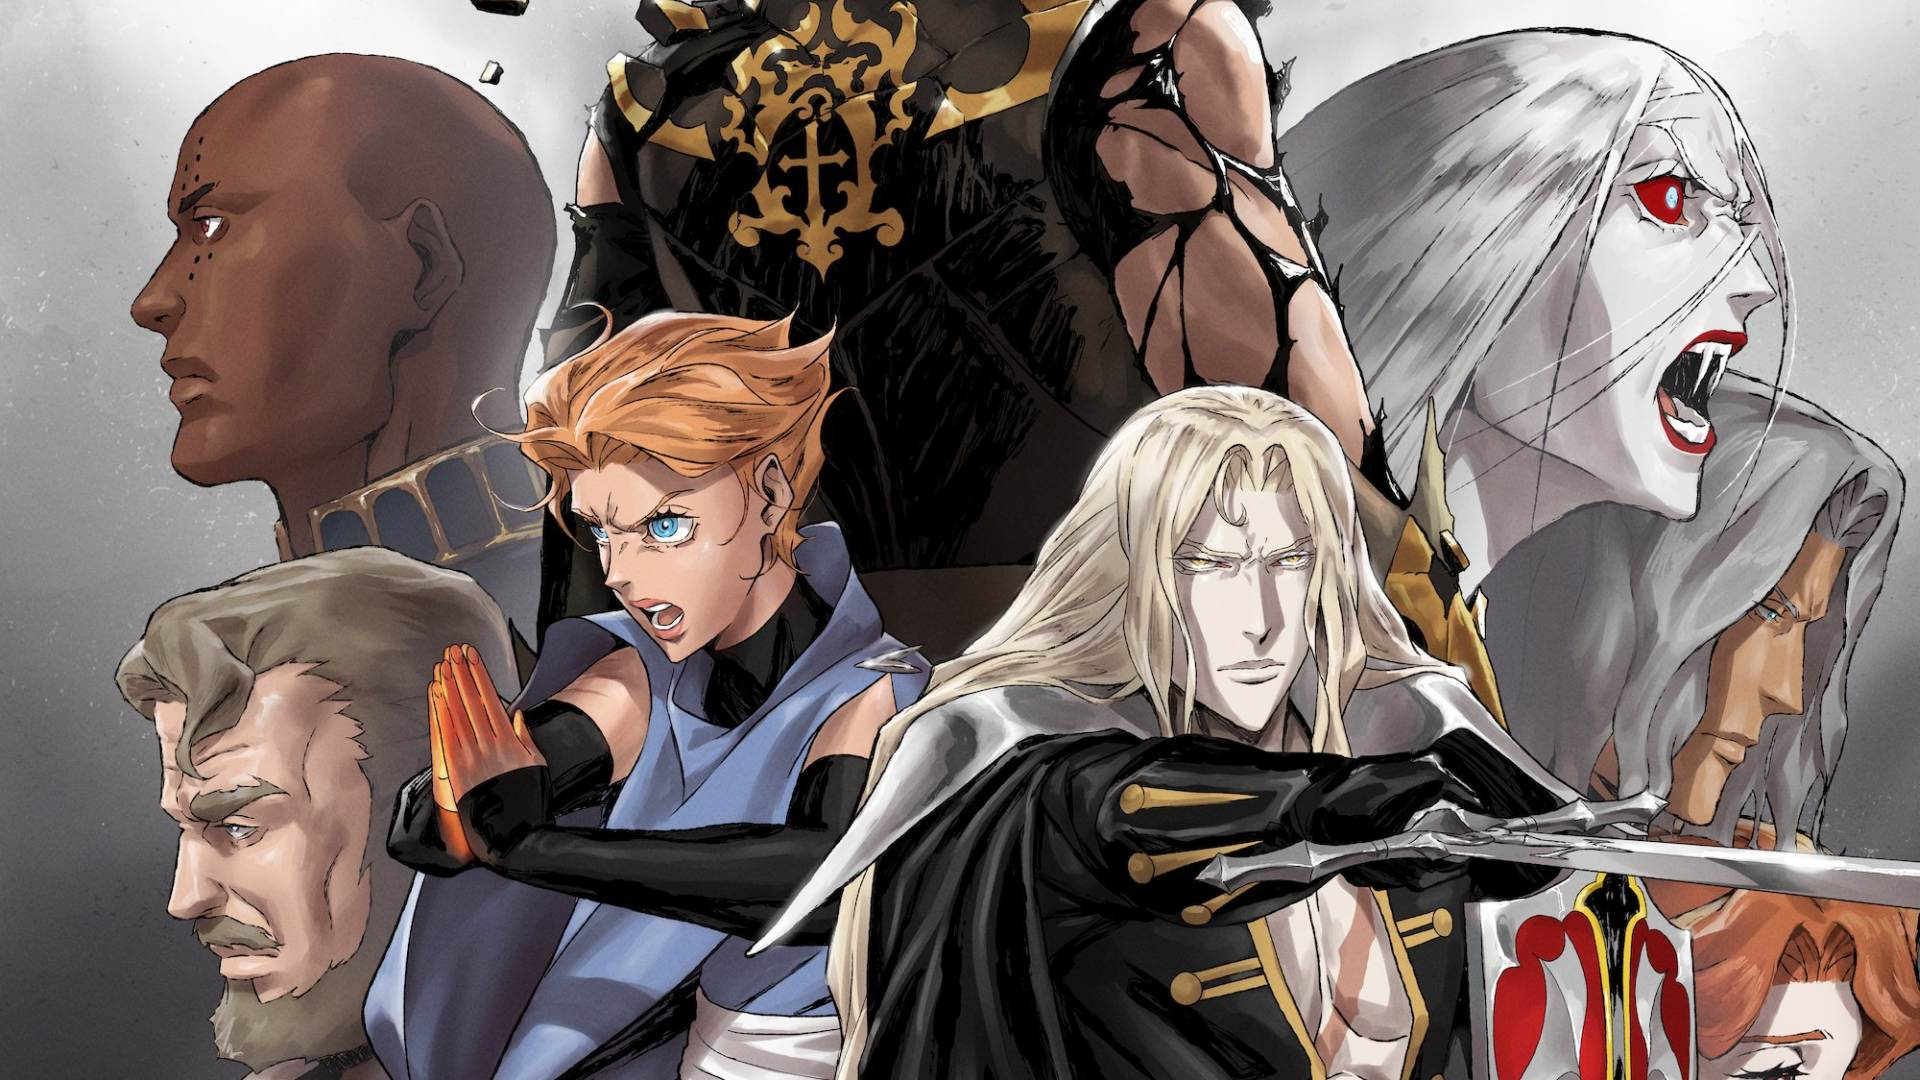 Netflix's Castlevania airs its final season next month, but new series could be coming screenshot